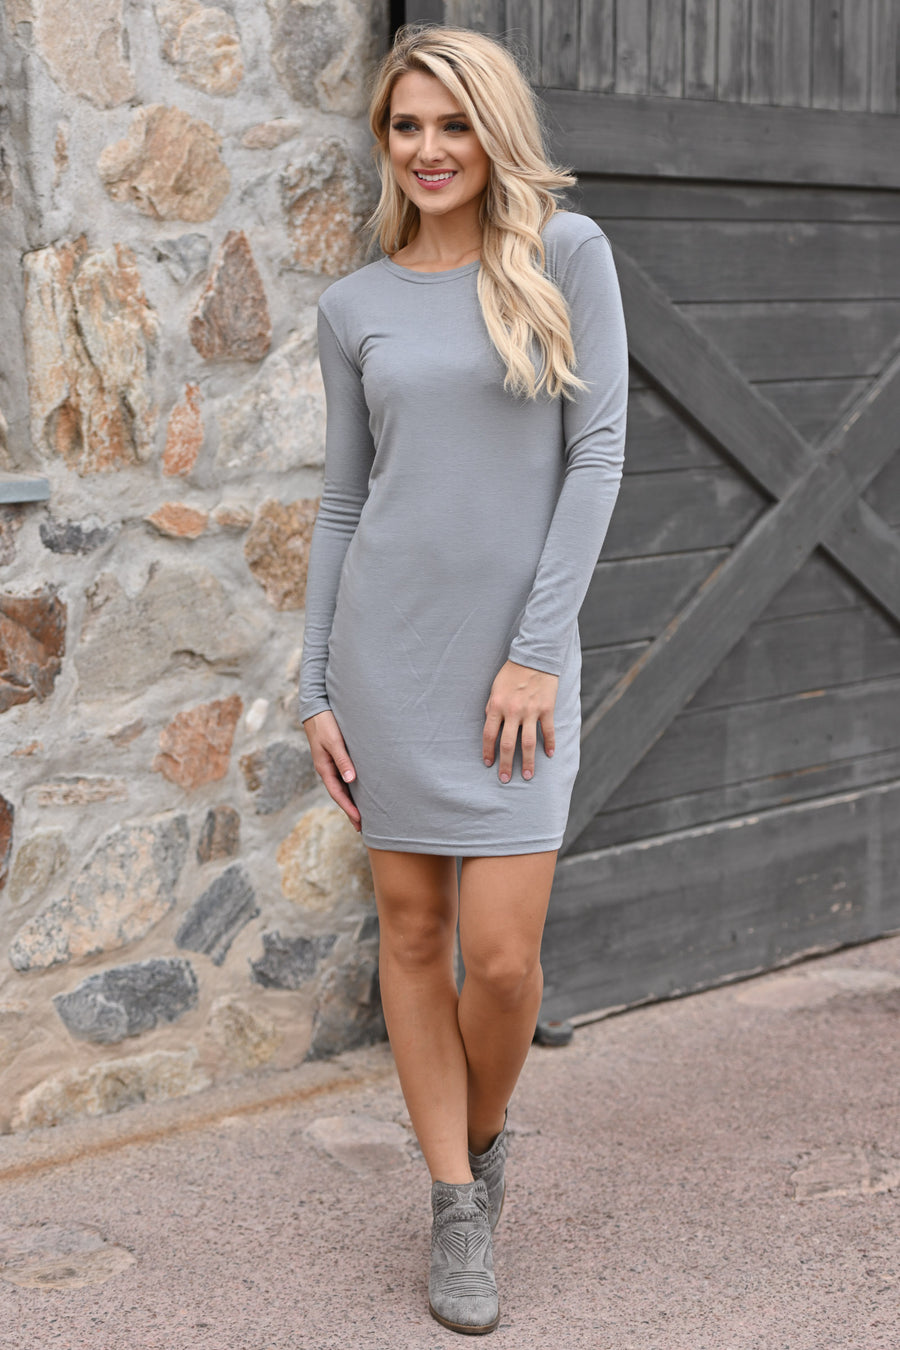 PIKO Dreams Are Forever Dress - Grey women's long sleeve dress, fall outfit, Closet Candy Boutique 1